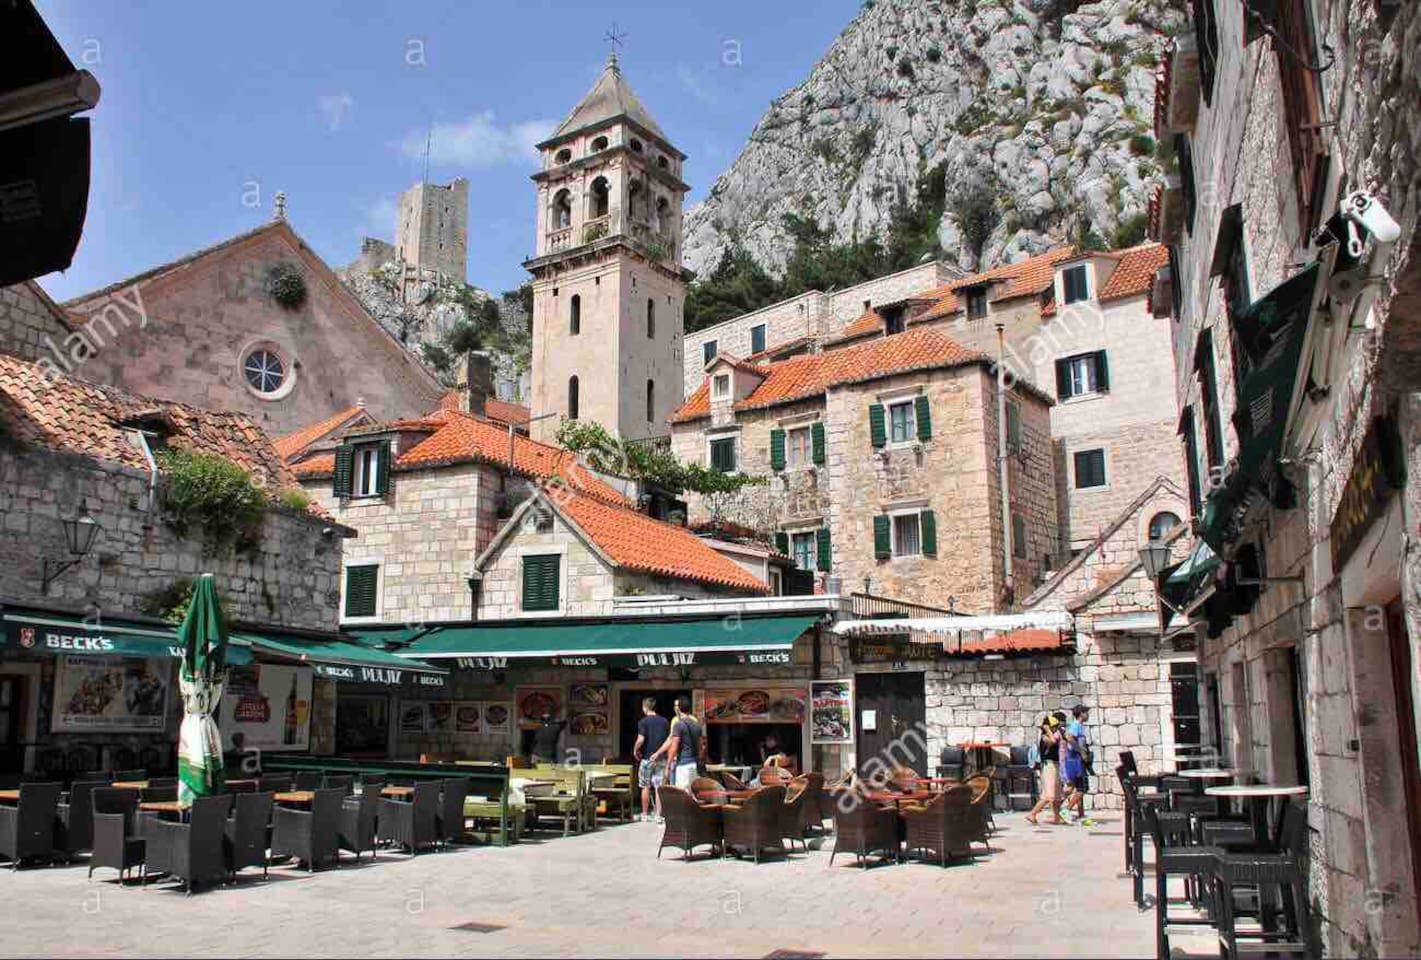 Discover Omis the medival pirate town. Popular for it's music festival. Lots of activities are waiting to be discovered.